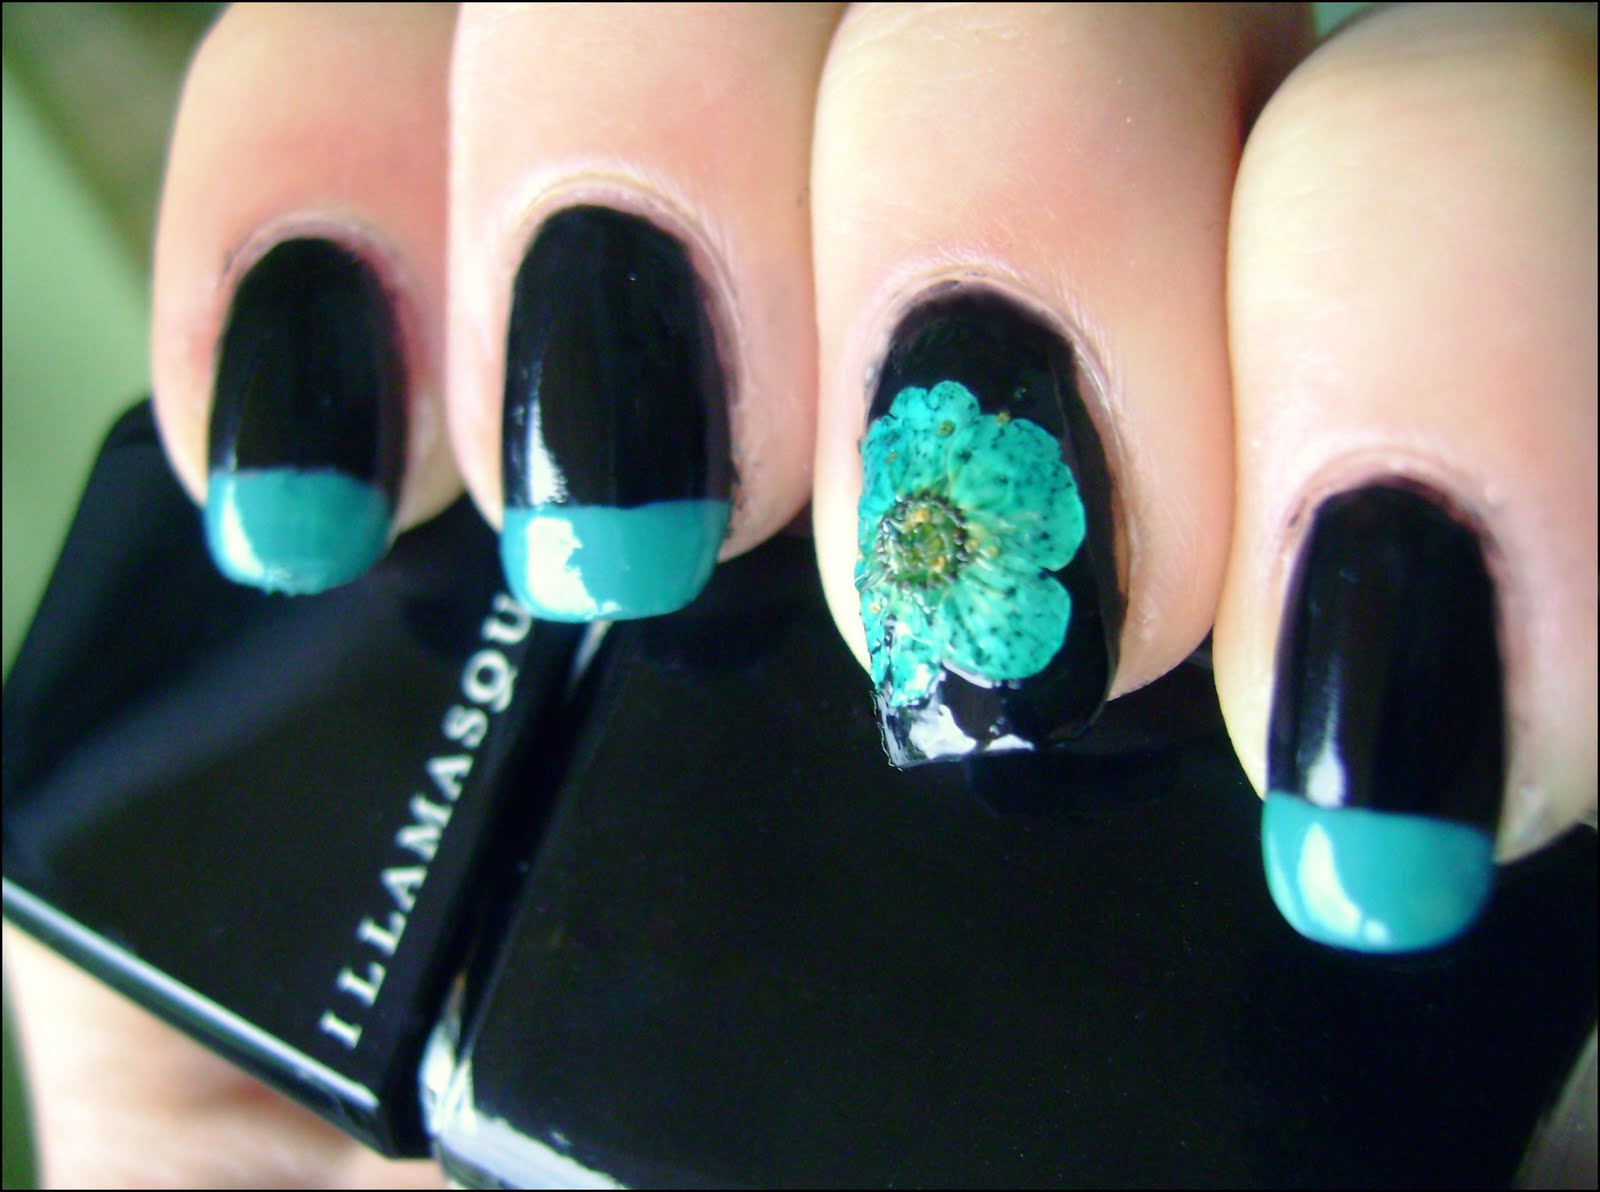 Acrylic Nail Art Designs Turquoise Dried Flowers On Nails